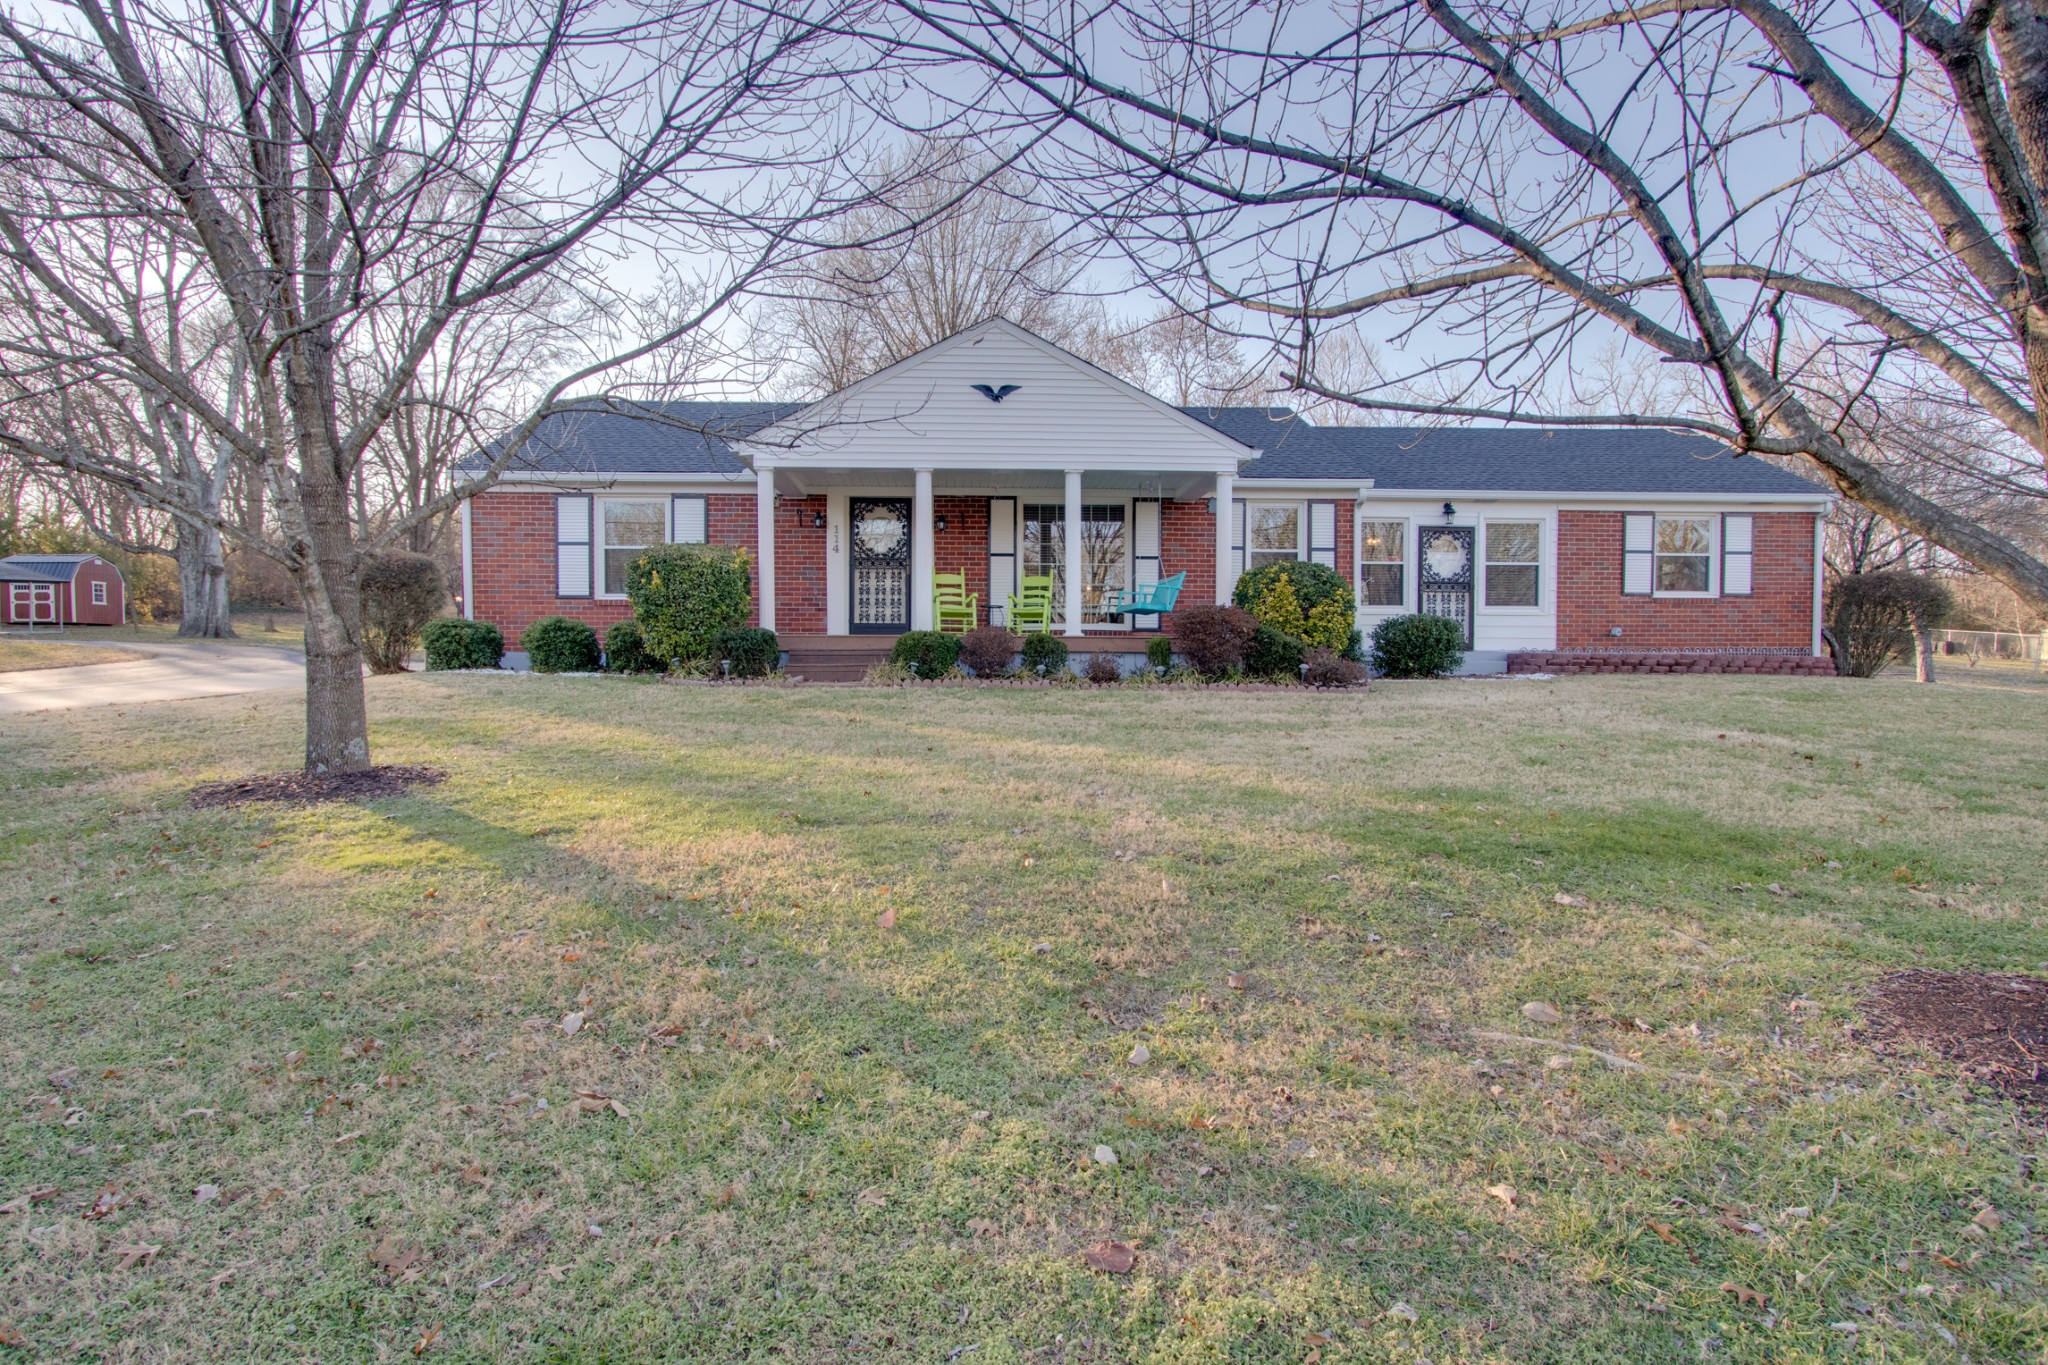 114 S Graycroft Ave, Madison, TN 37115 - Madison, TN real estate listing